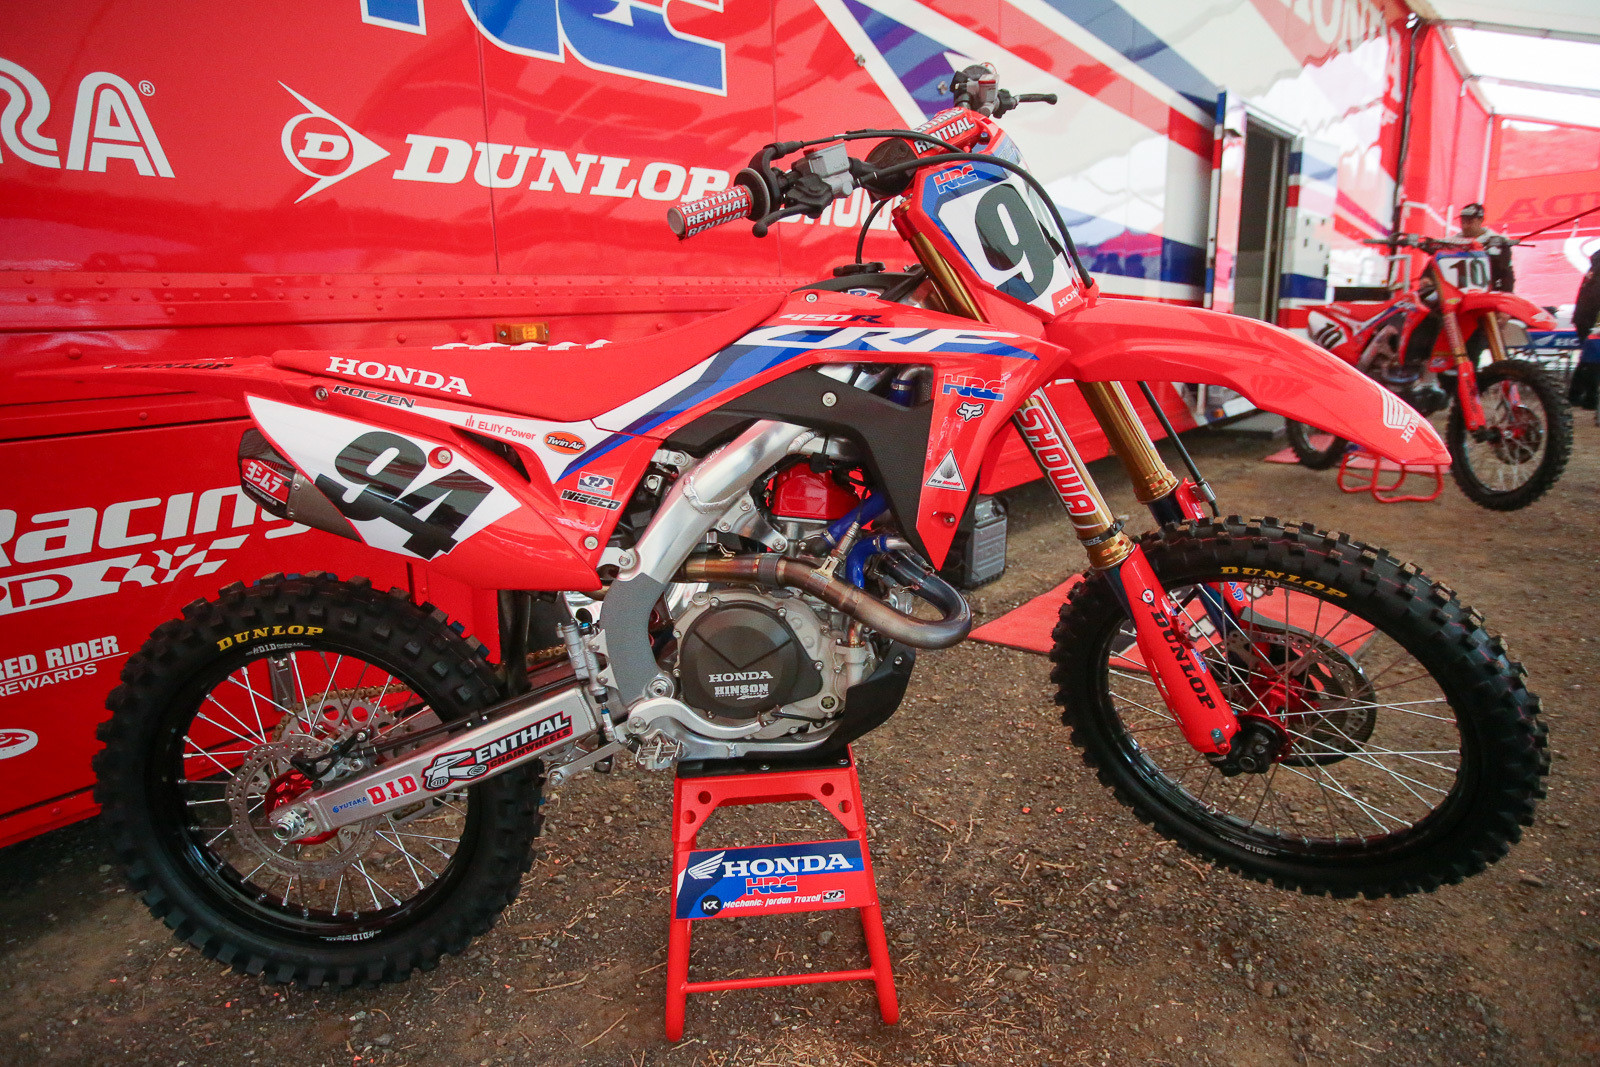 Here's a peek at the new look that the Team Honda HRC riders will be rocking in '20. We like the red valve cover. We're still getting used to the abbreviated background on the sideplates where the rider's boots usually very quickly chew up the stickers.